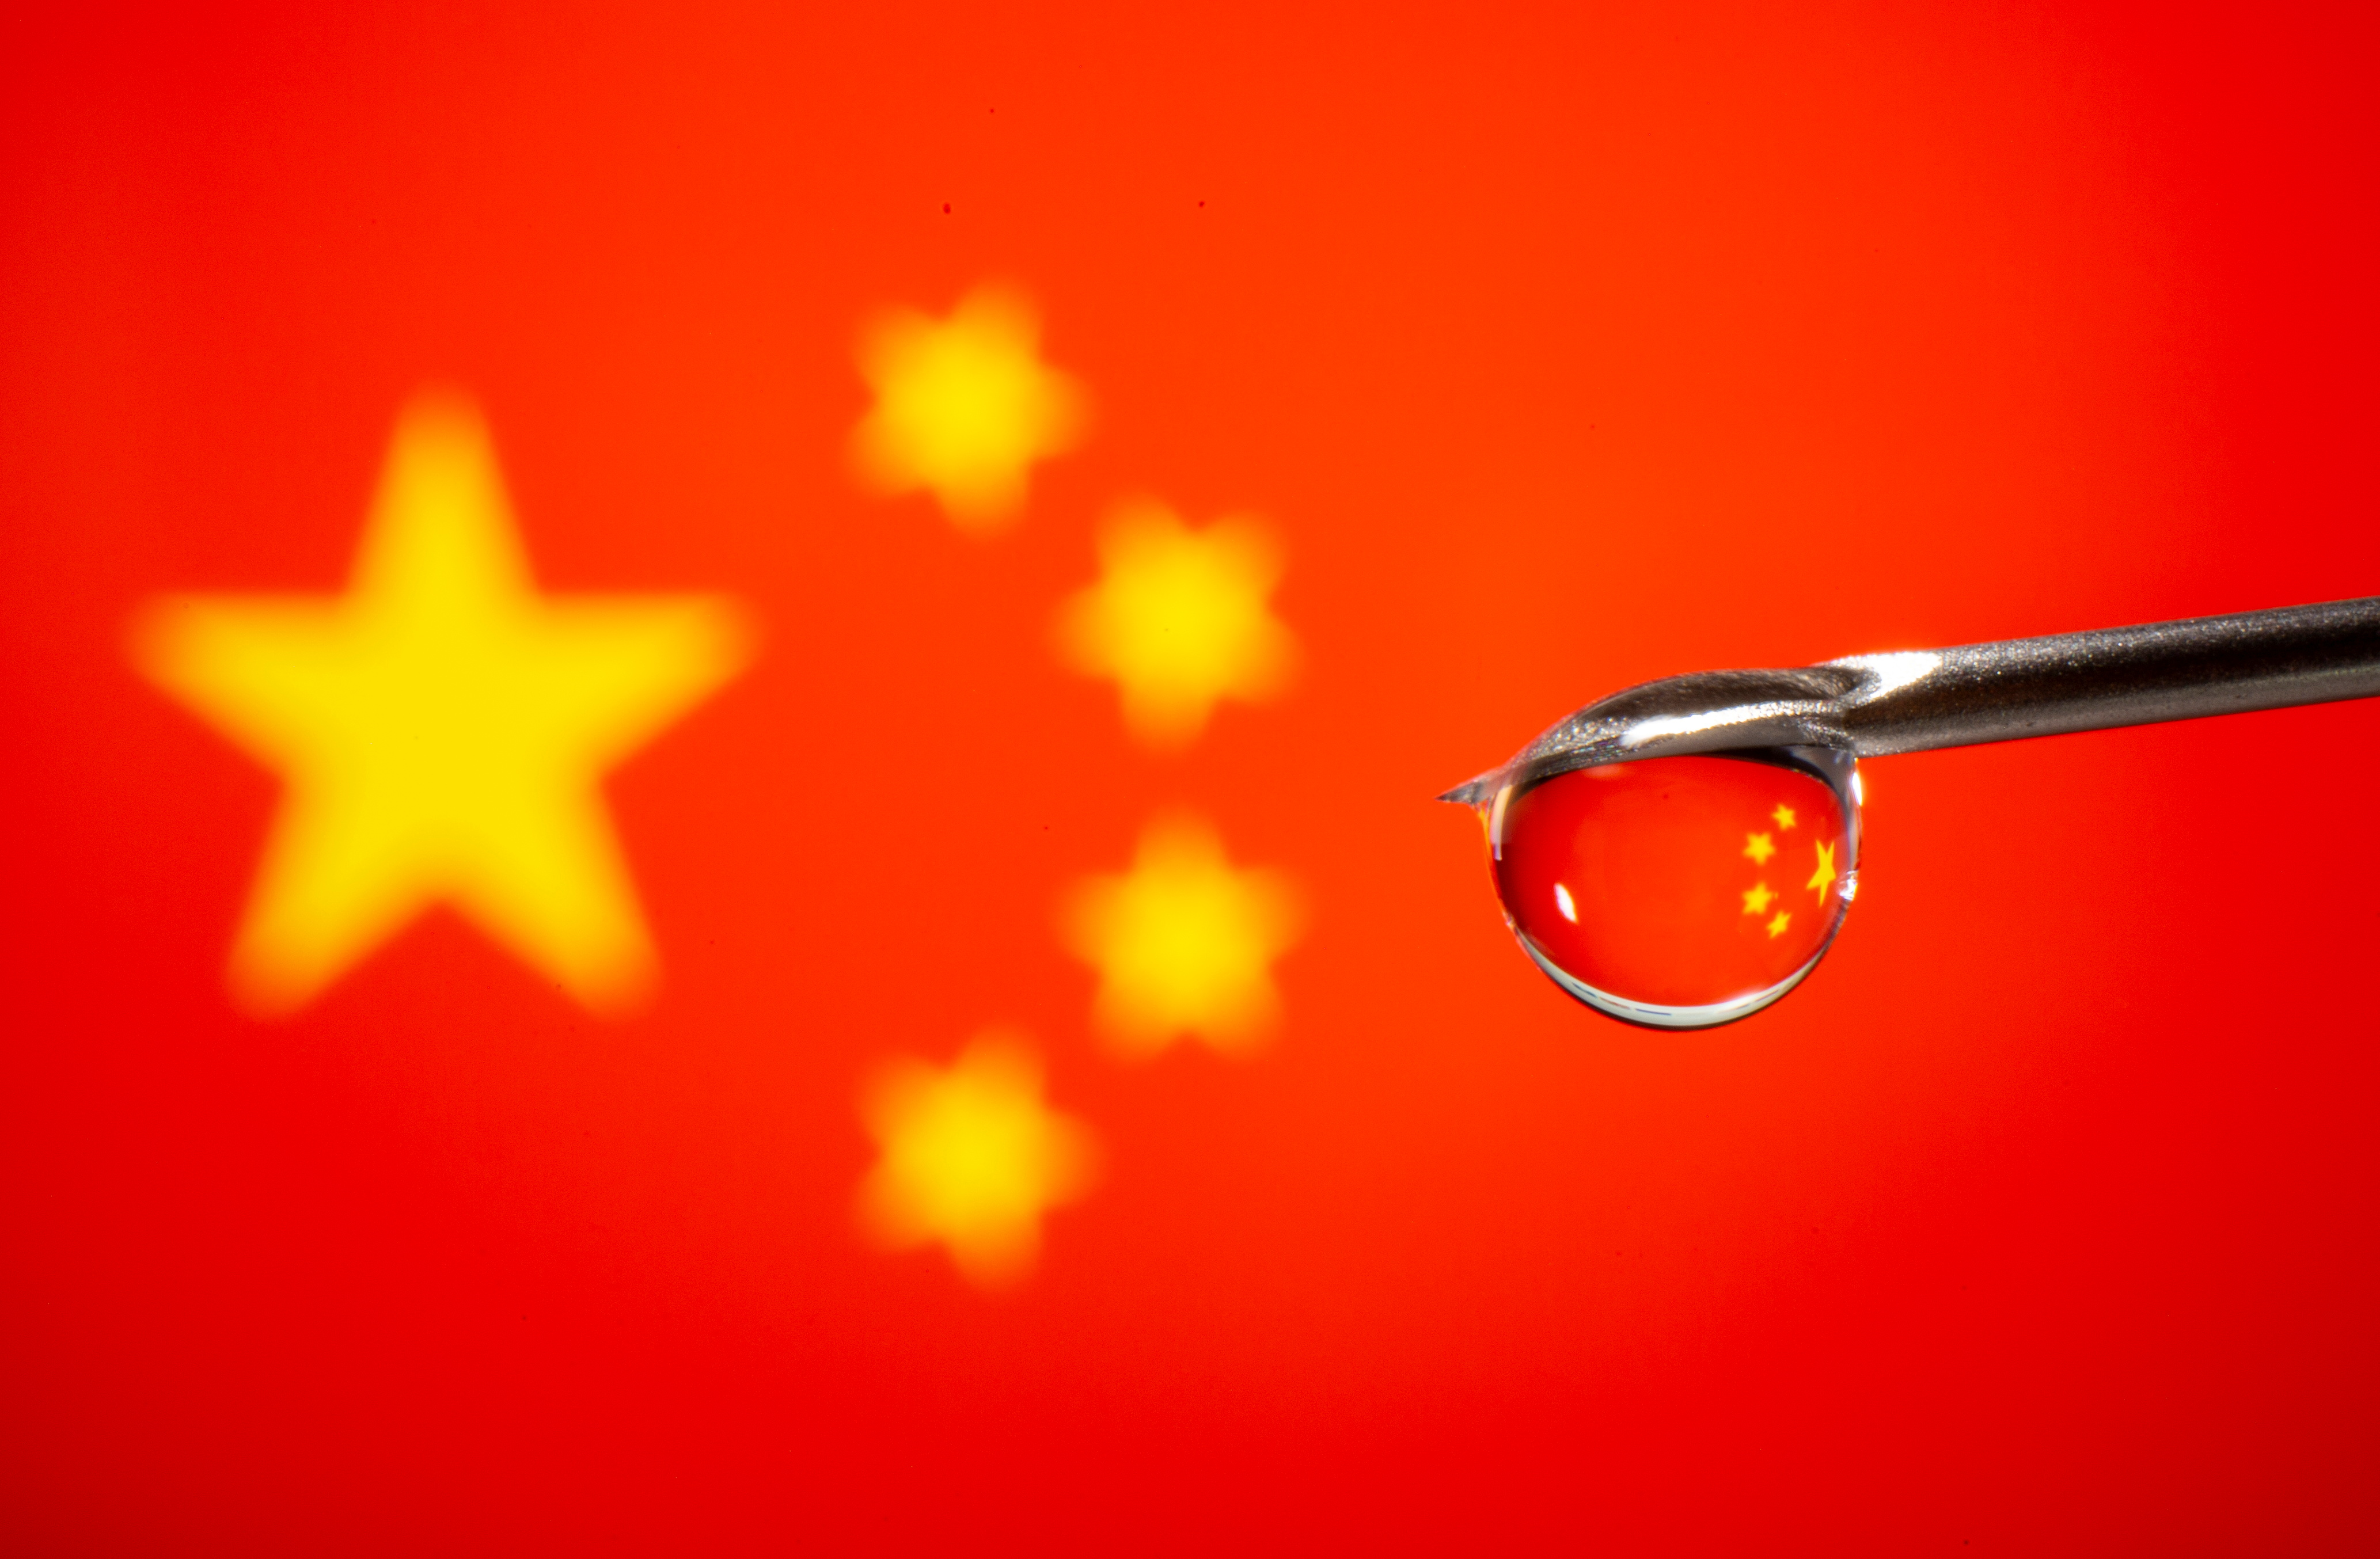 China's flag is reflected in a drop on a syringe needle in this illustration taken November 9, 2020. REUTERS/Dado Ruvic/Illustration